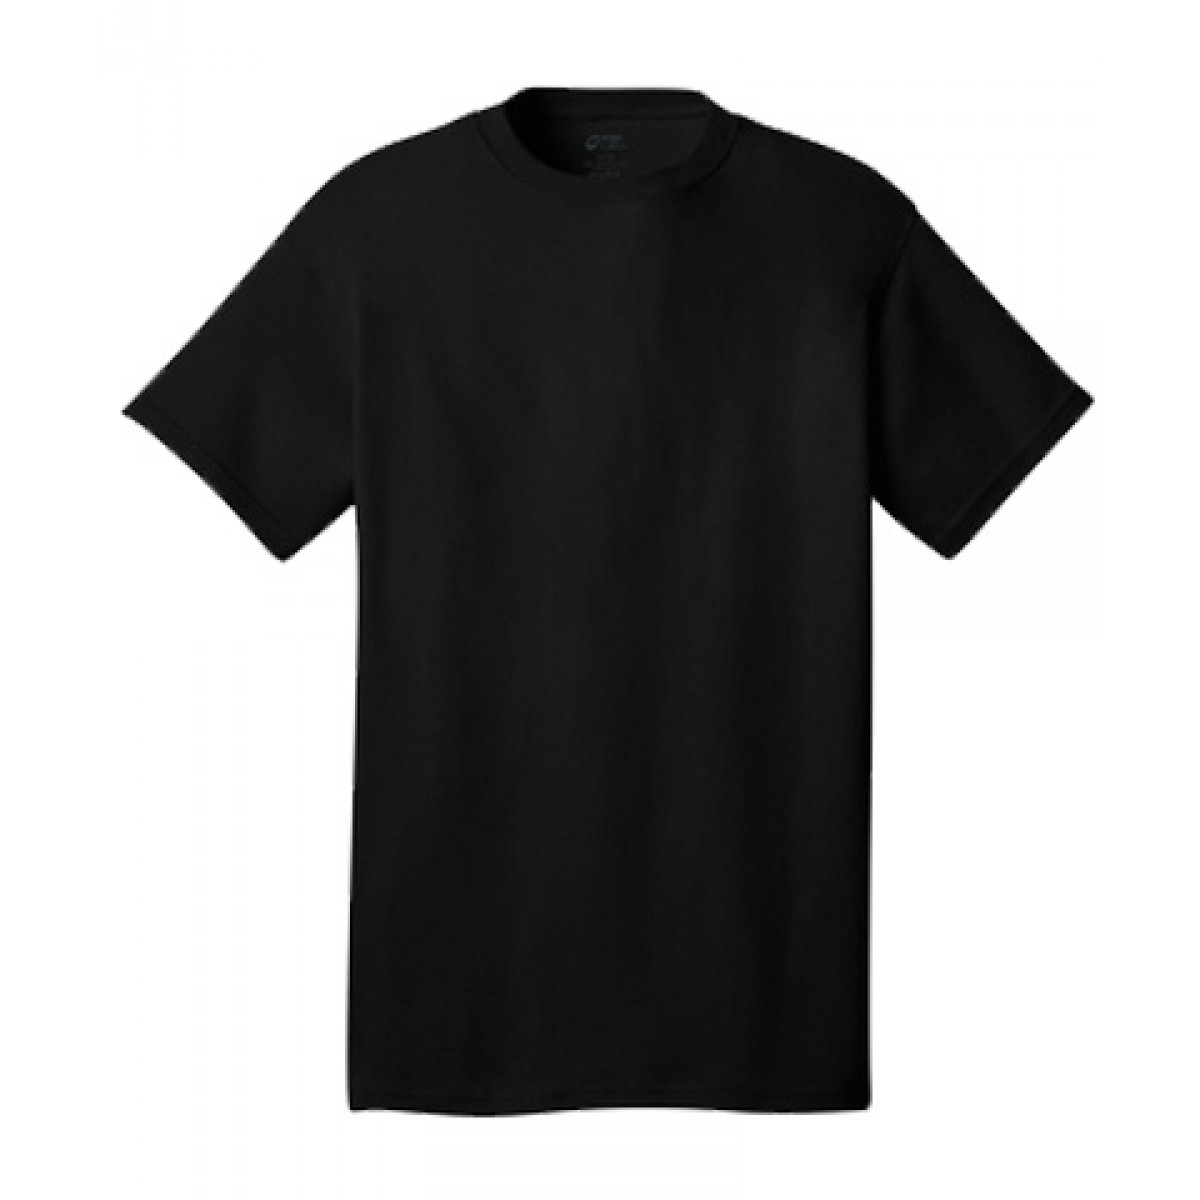 Cotton Short Sleeve T-Shirt-Black-L